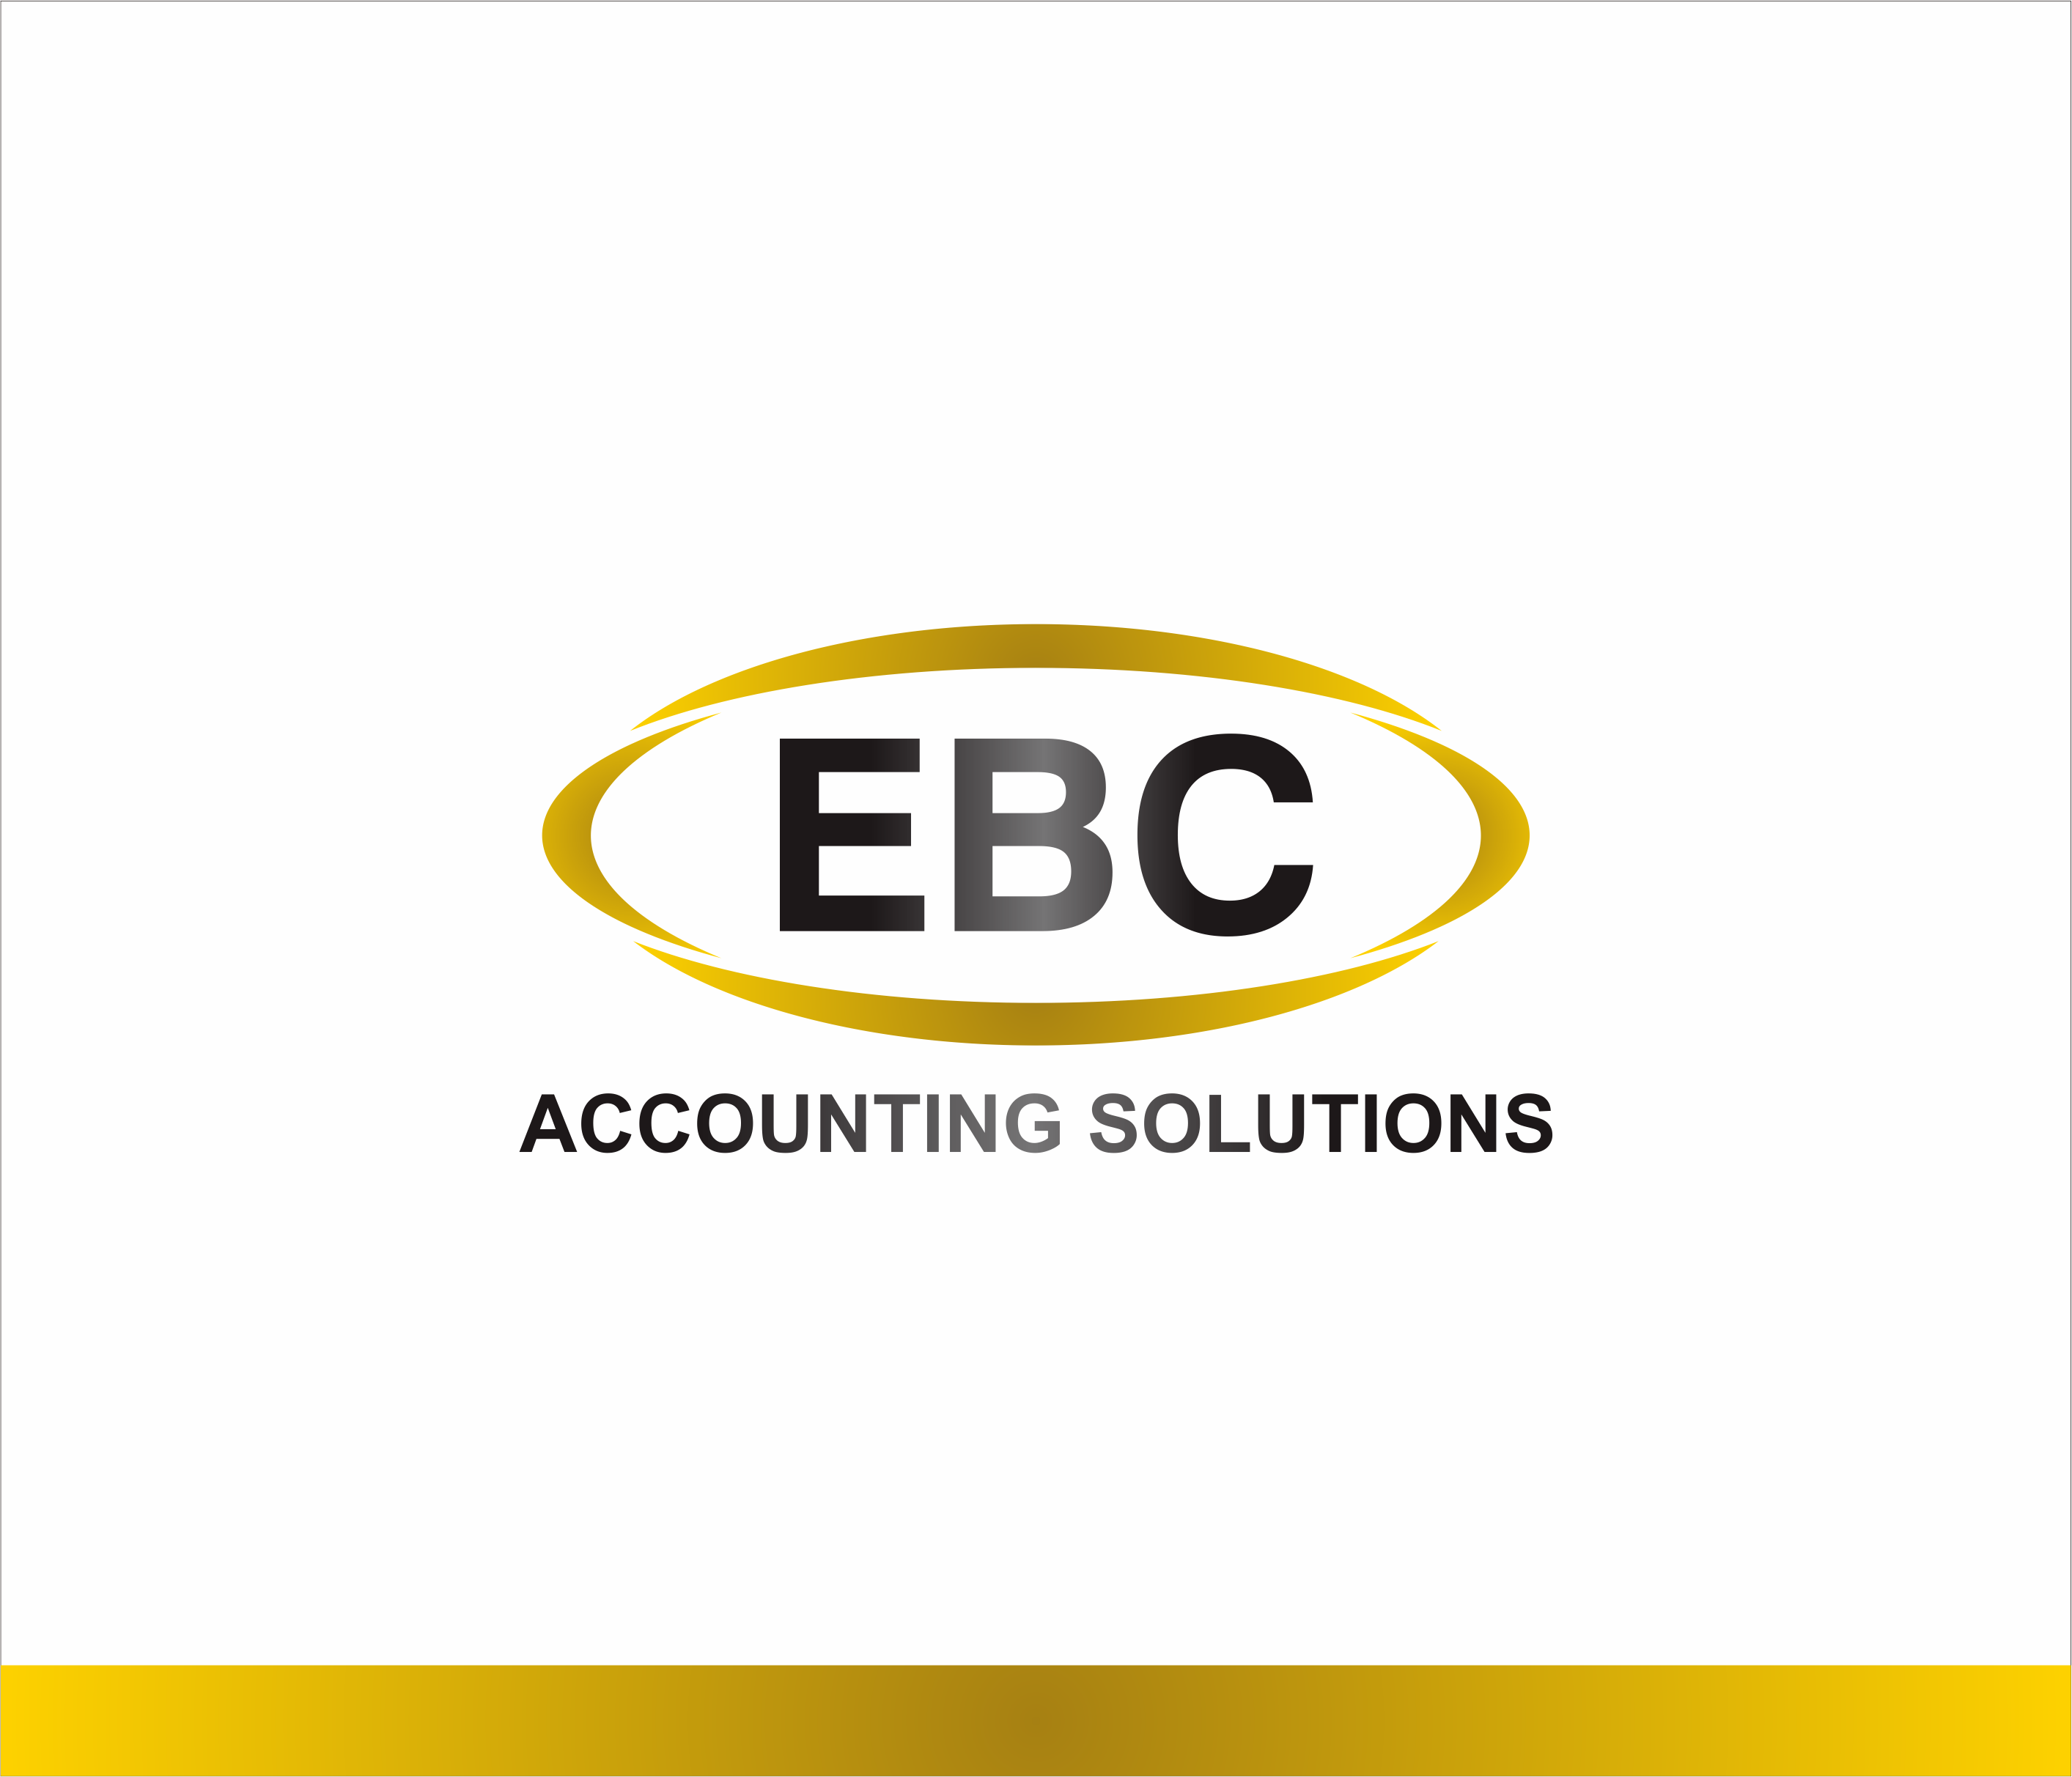 Logo Design by Armada Jamaluddin - Entry No. 221 in the Logo Design Contest New Logo Design for EBC Accounting Solutions.